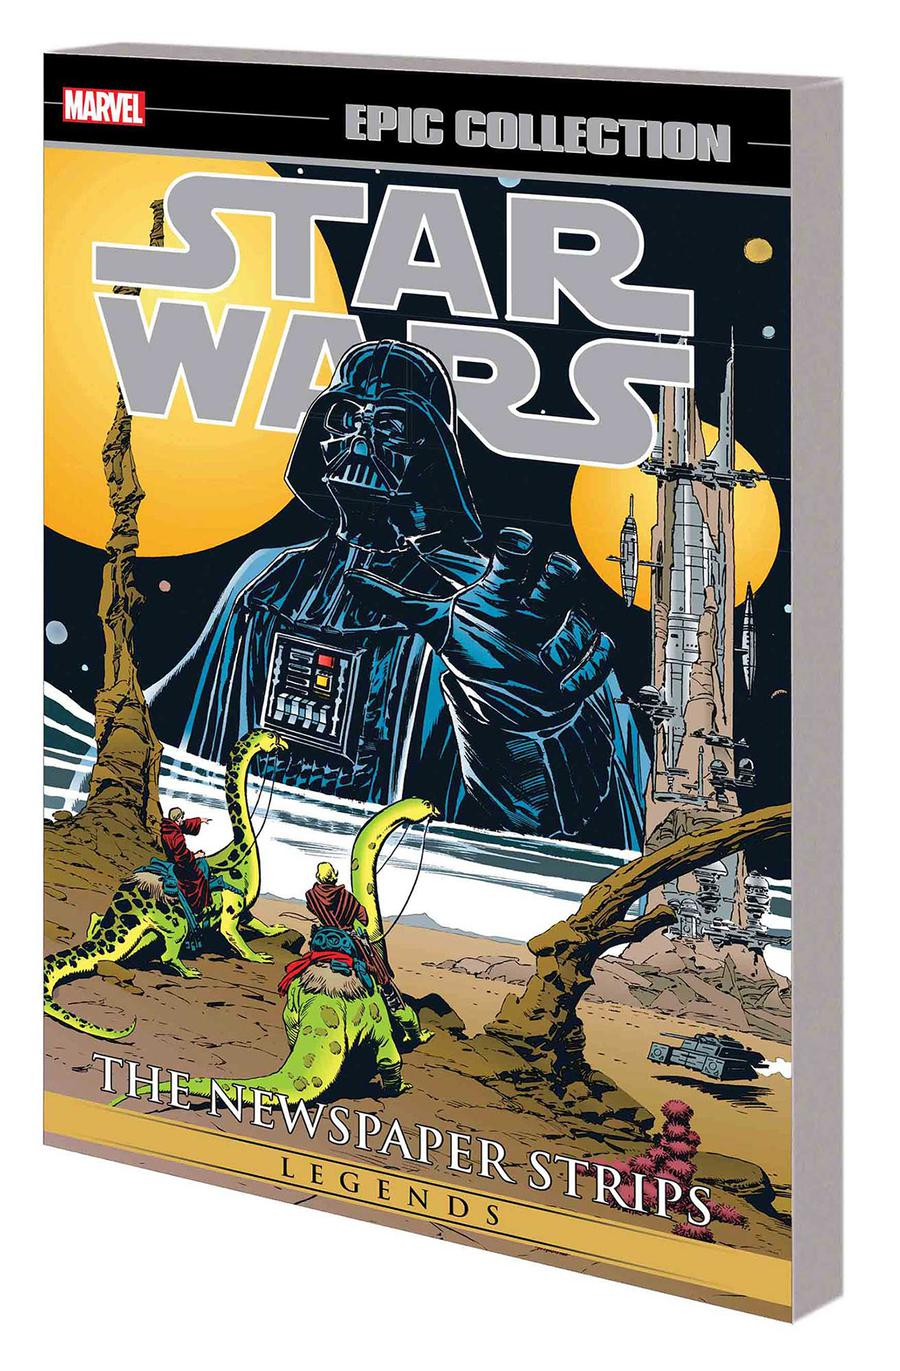 Star Wars Legends Epic Collection Newspaper Strips Vol 2 TP